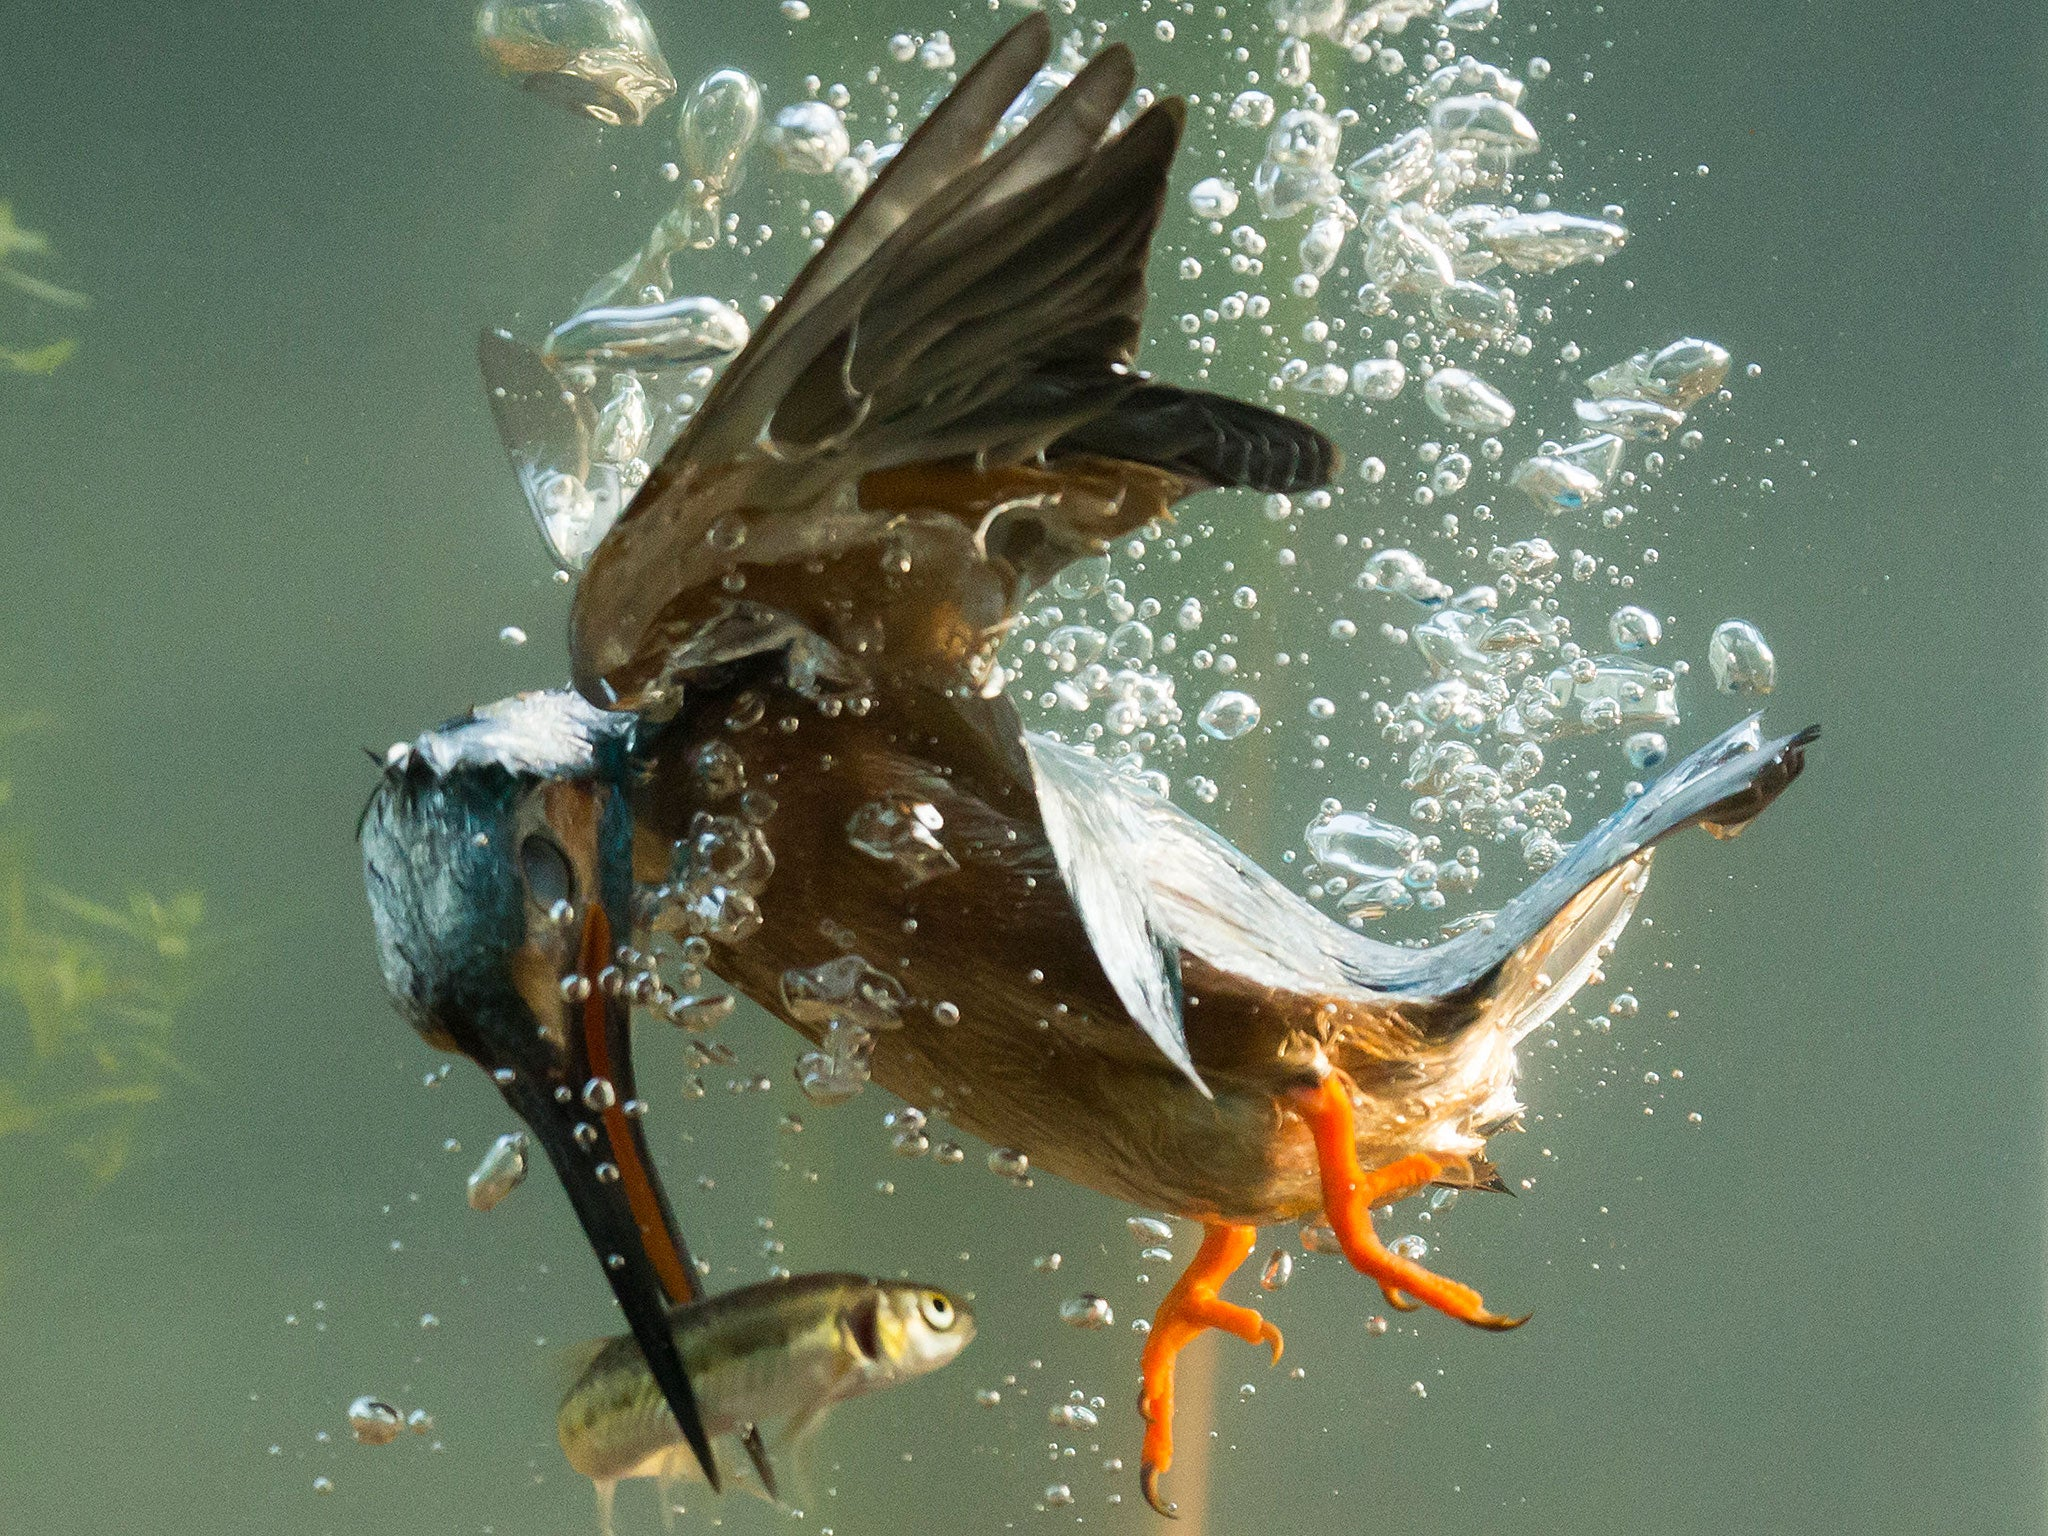 Kingfisher Captured Catching Fish At Bottom Of River In New Photographs The Independent The Independent